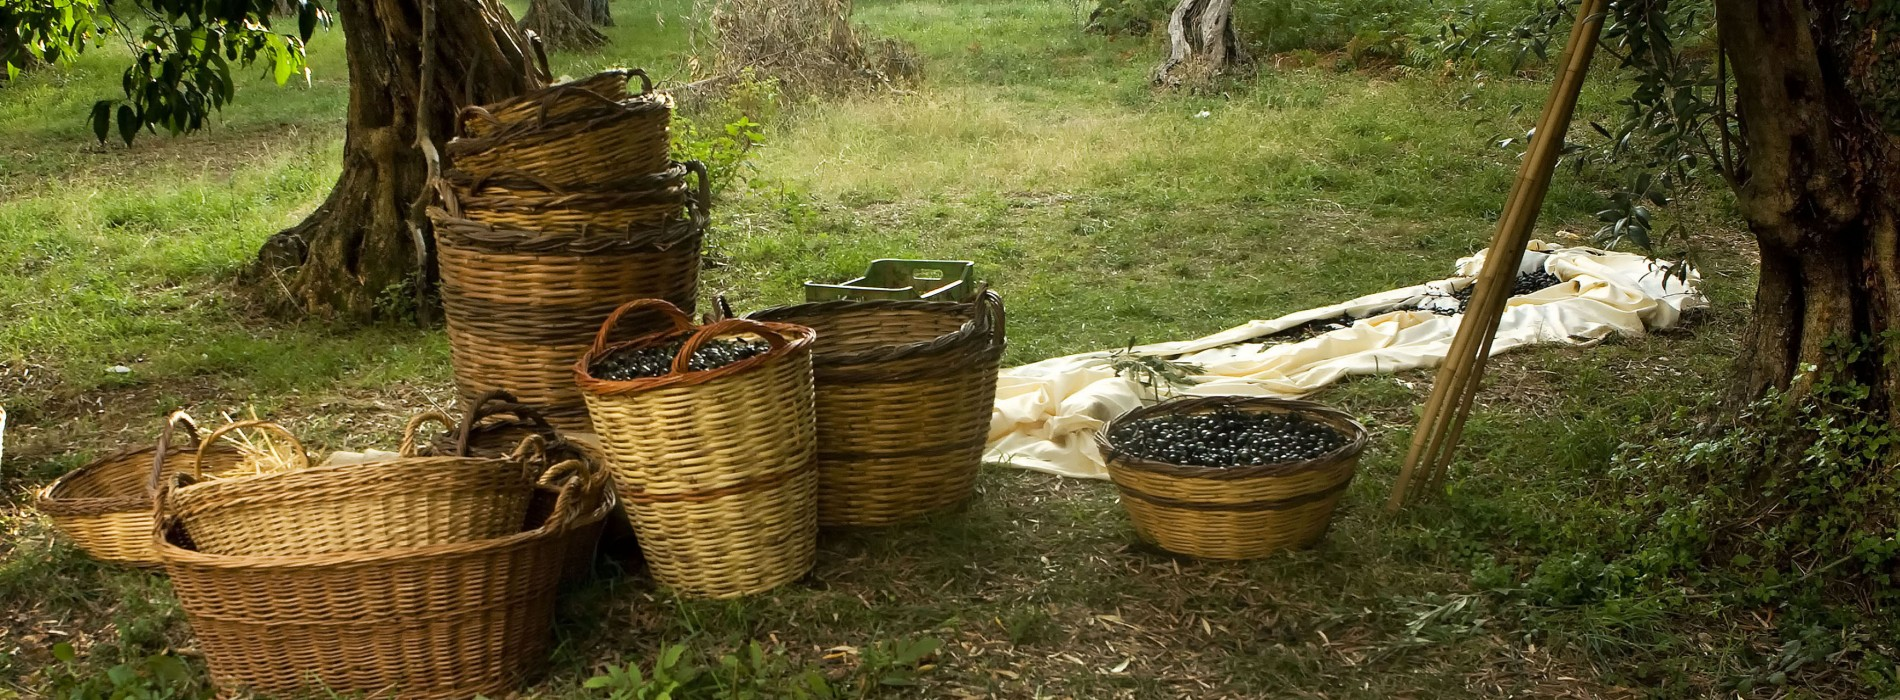 Experience the Greece countryside with Olive harvesting season